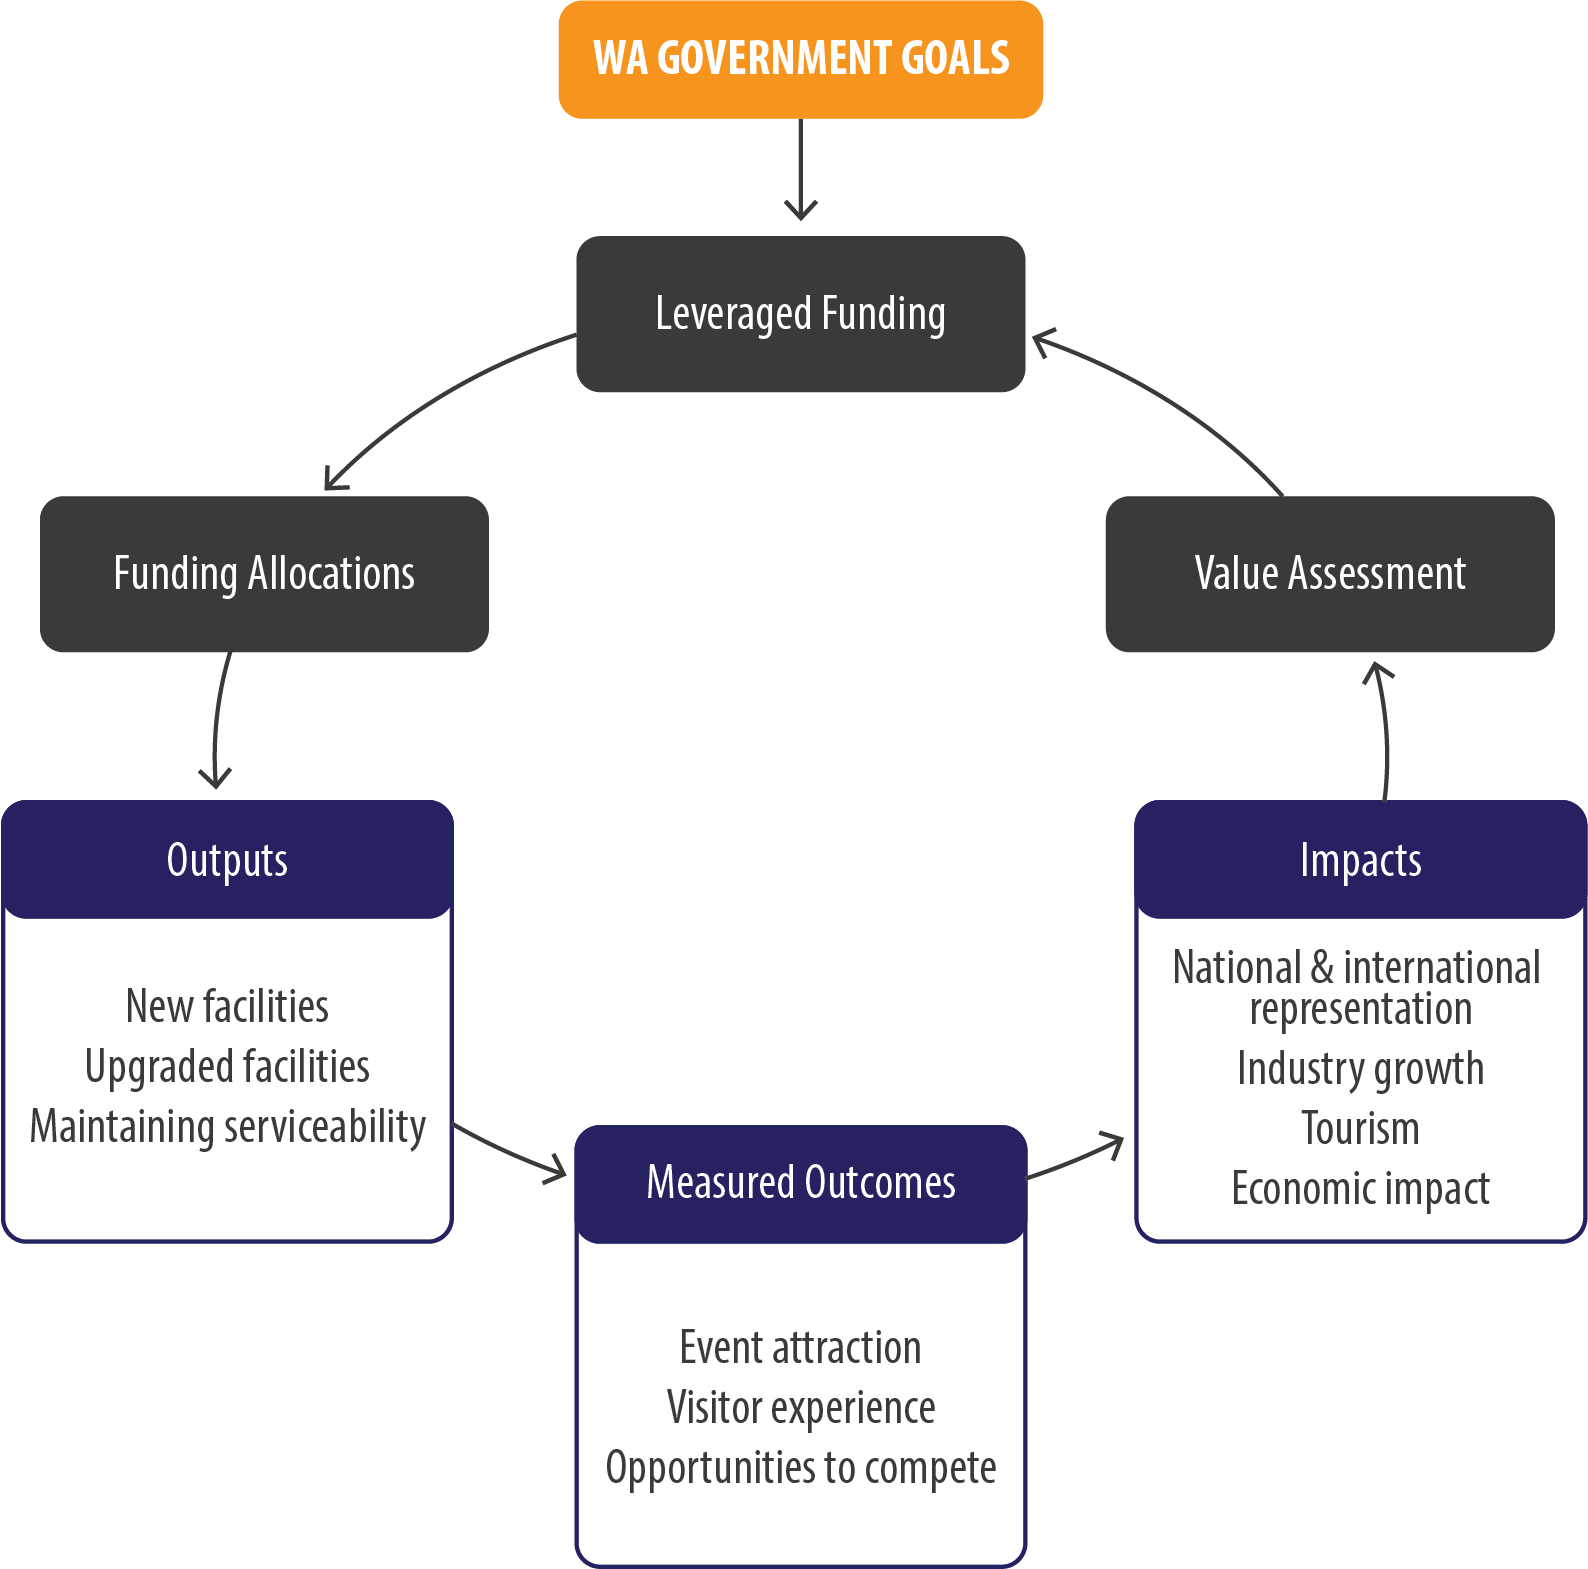 Figure 10. Outcomes Measurement Feedback Loop